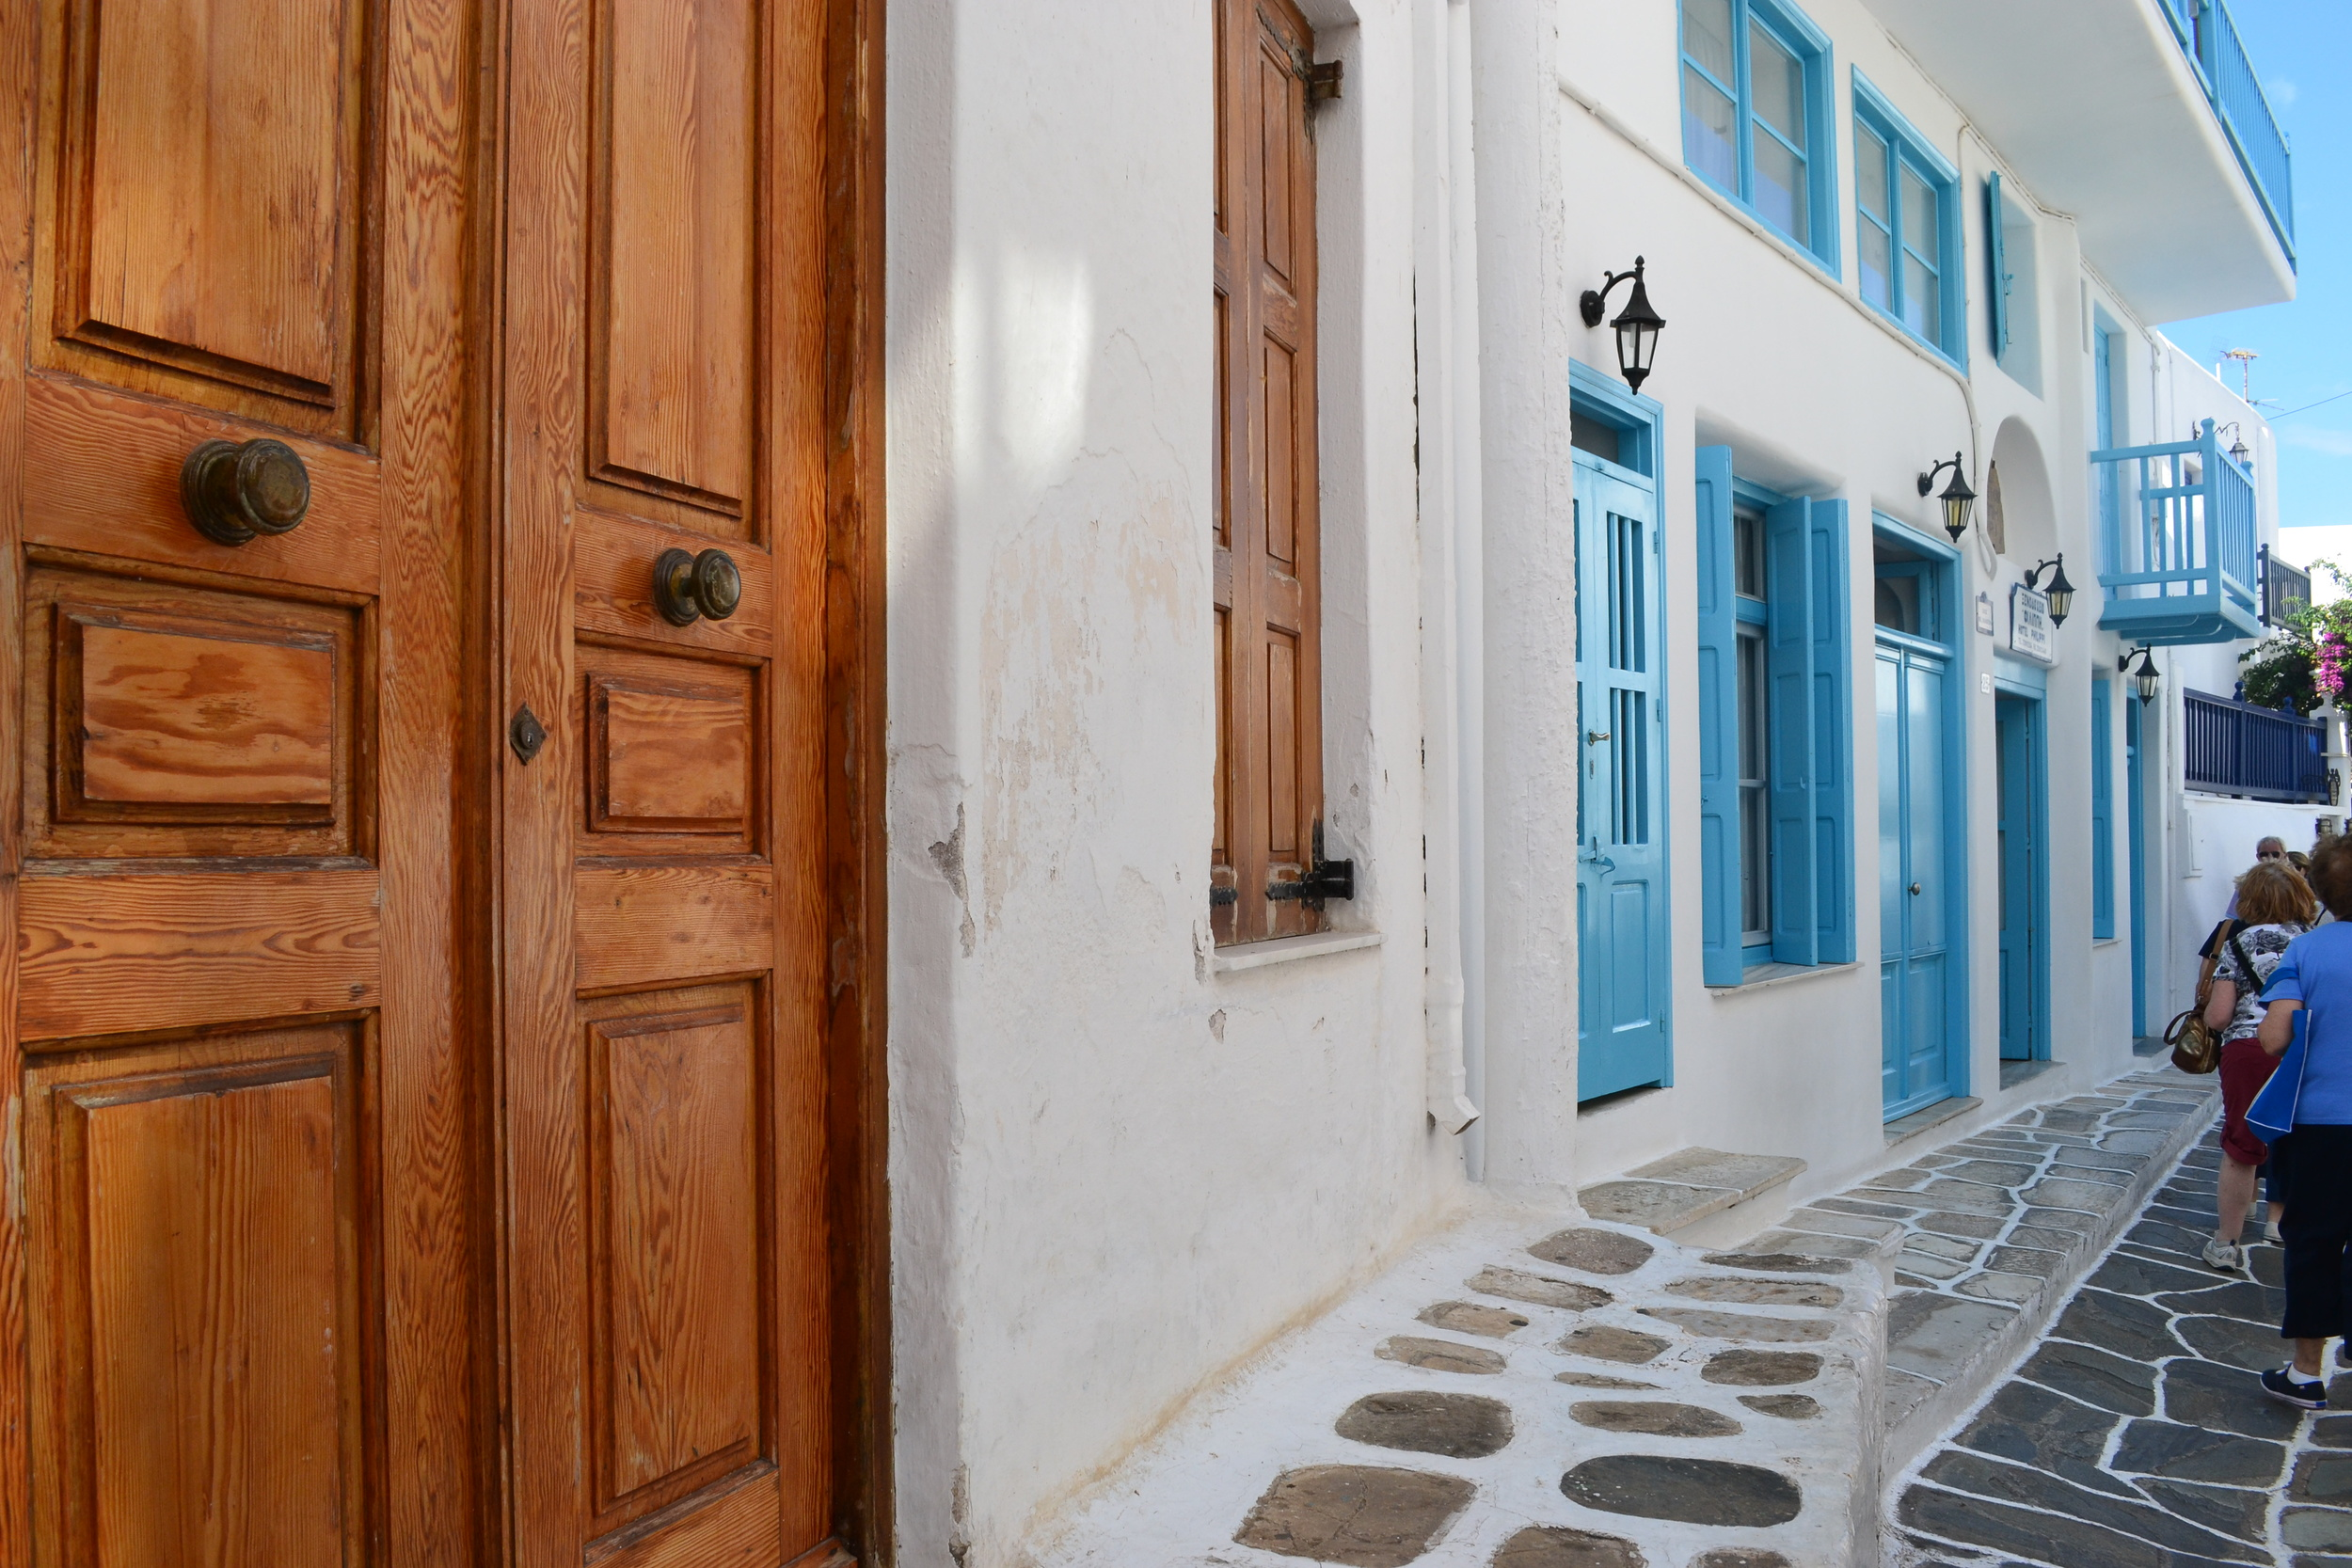 I was in love with Mykonos's white washed tiny streets and colorful doors.